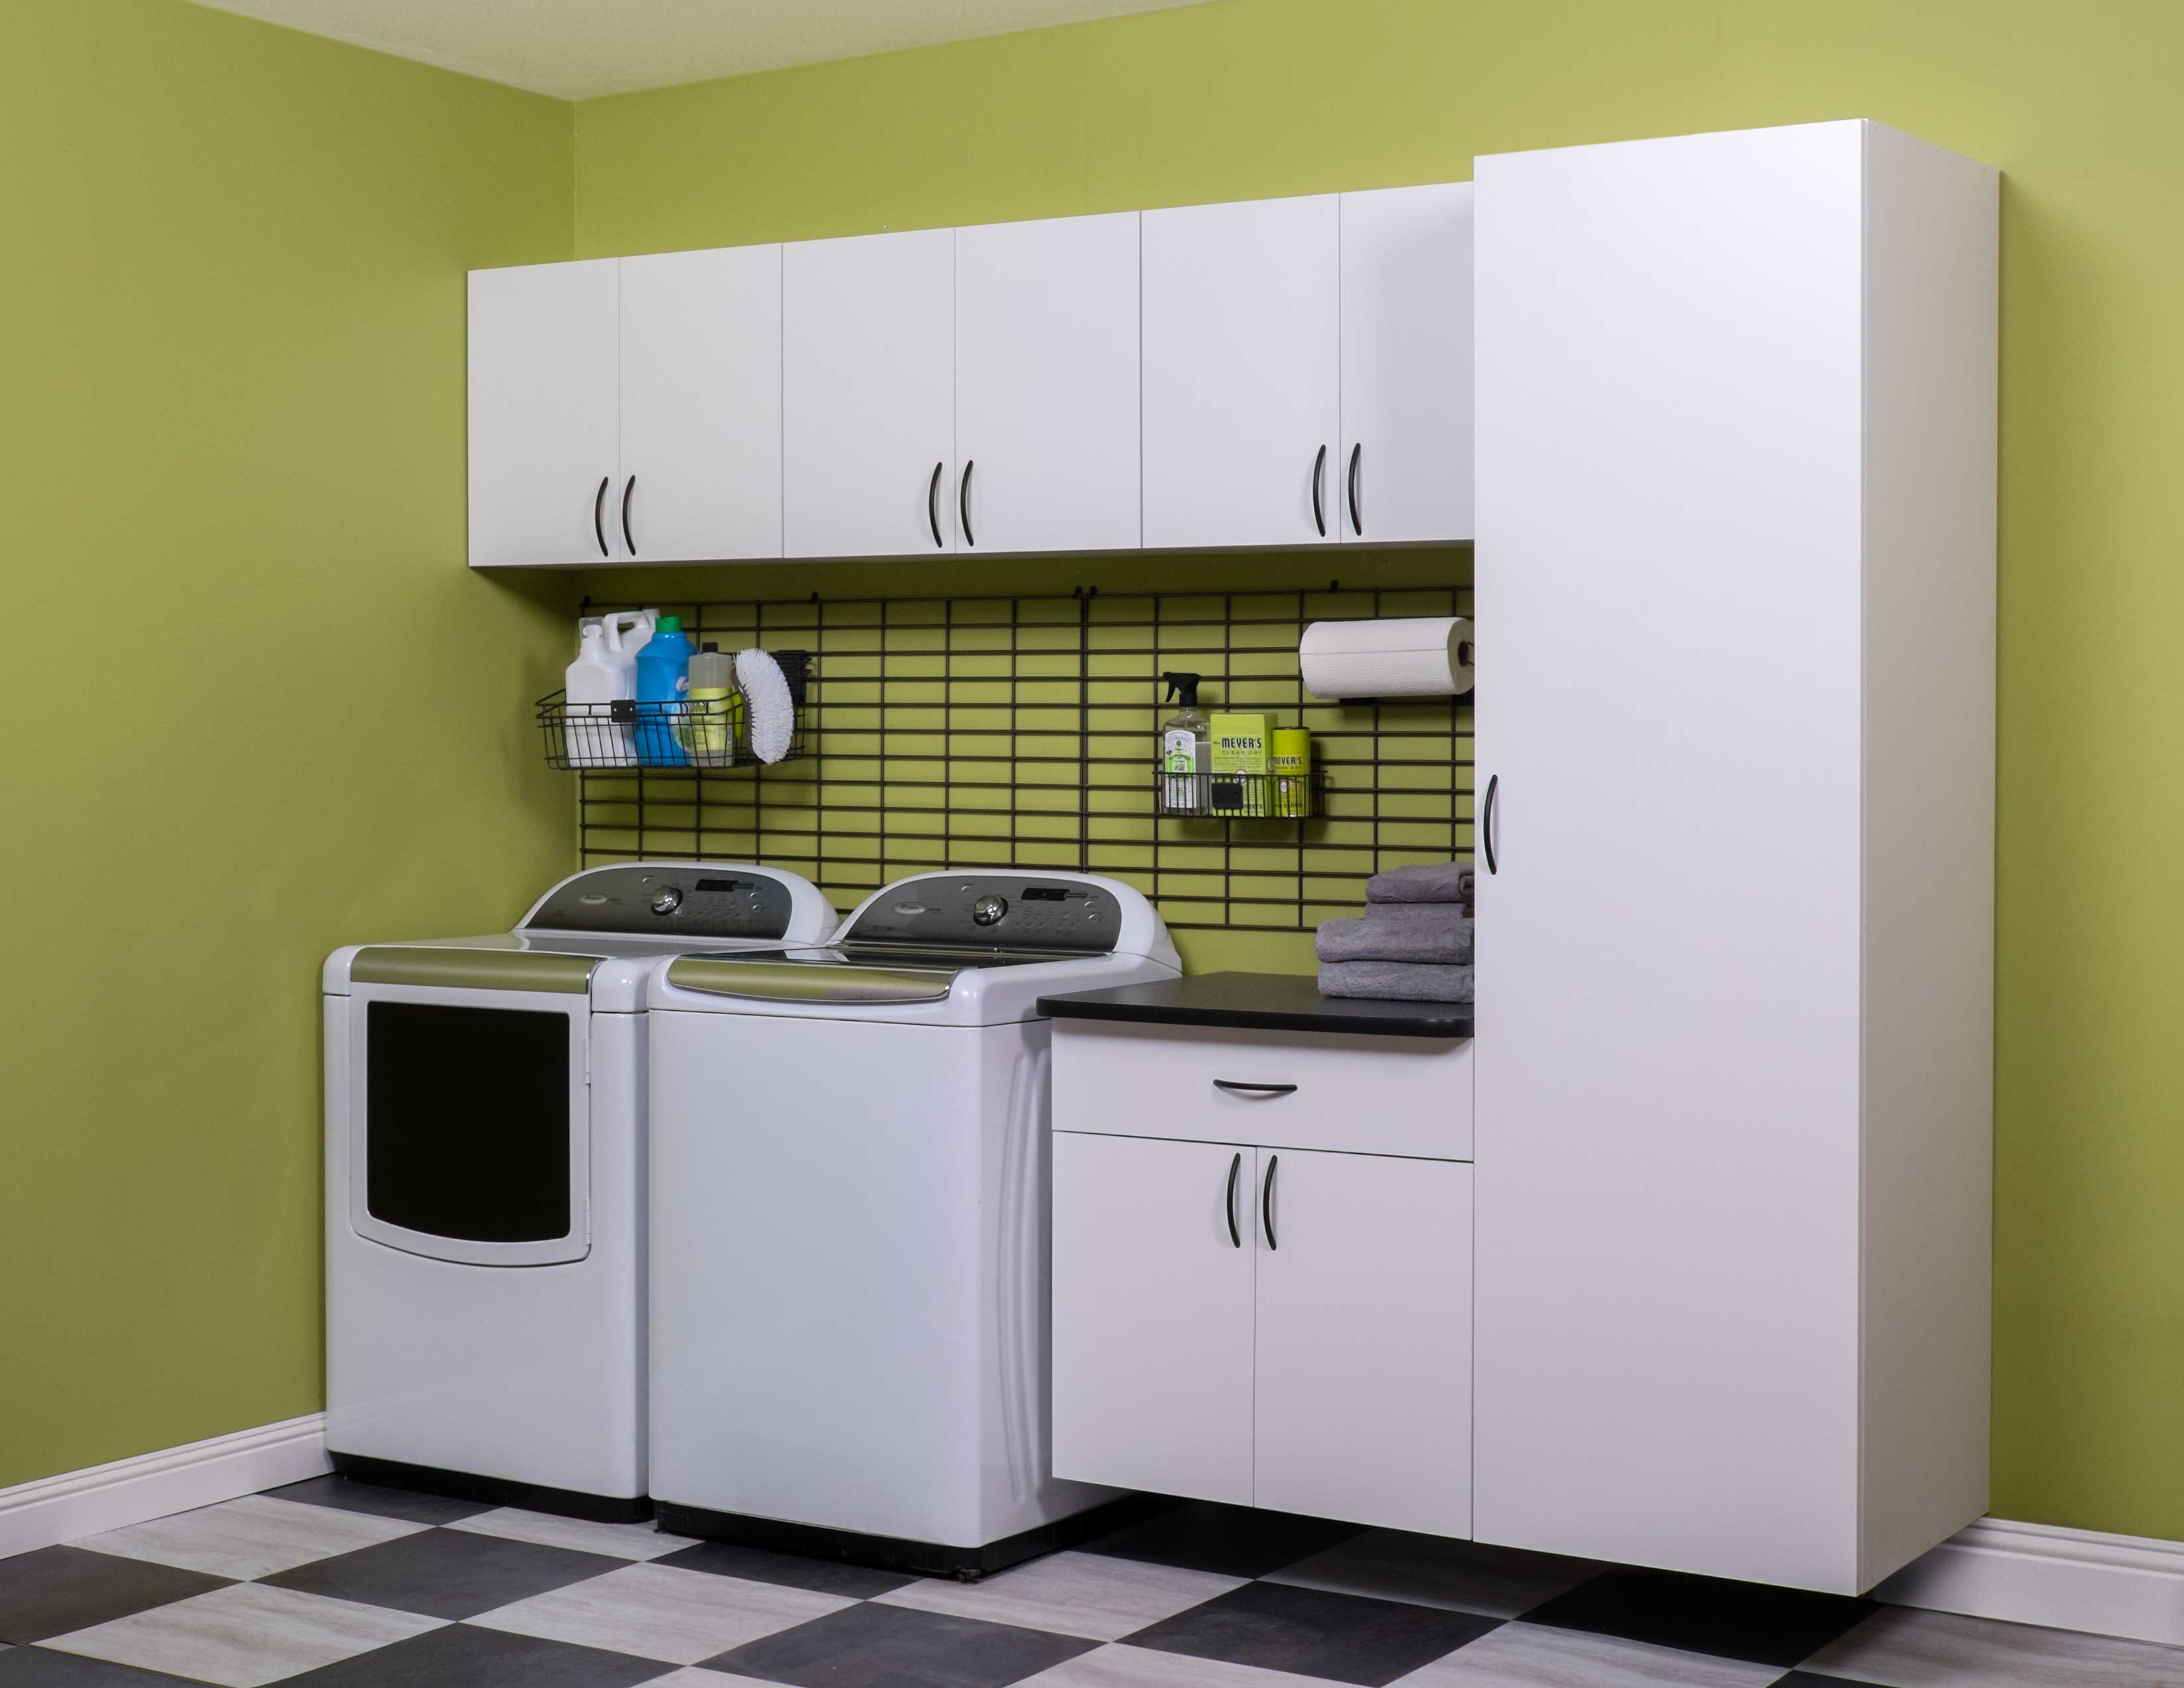 Get Organized for Life! Who says utility rooms can't be organized, functional and attractive? We'll show you how